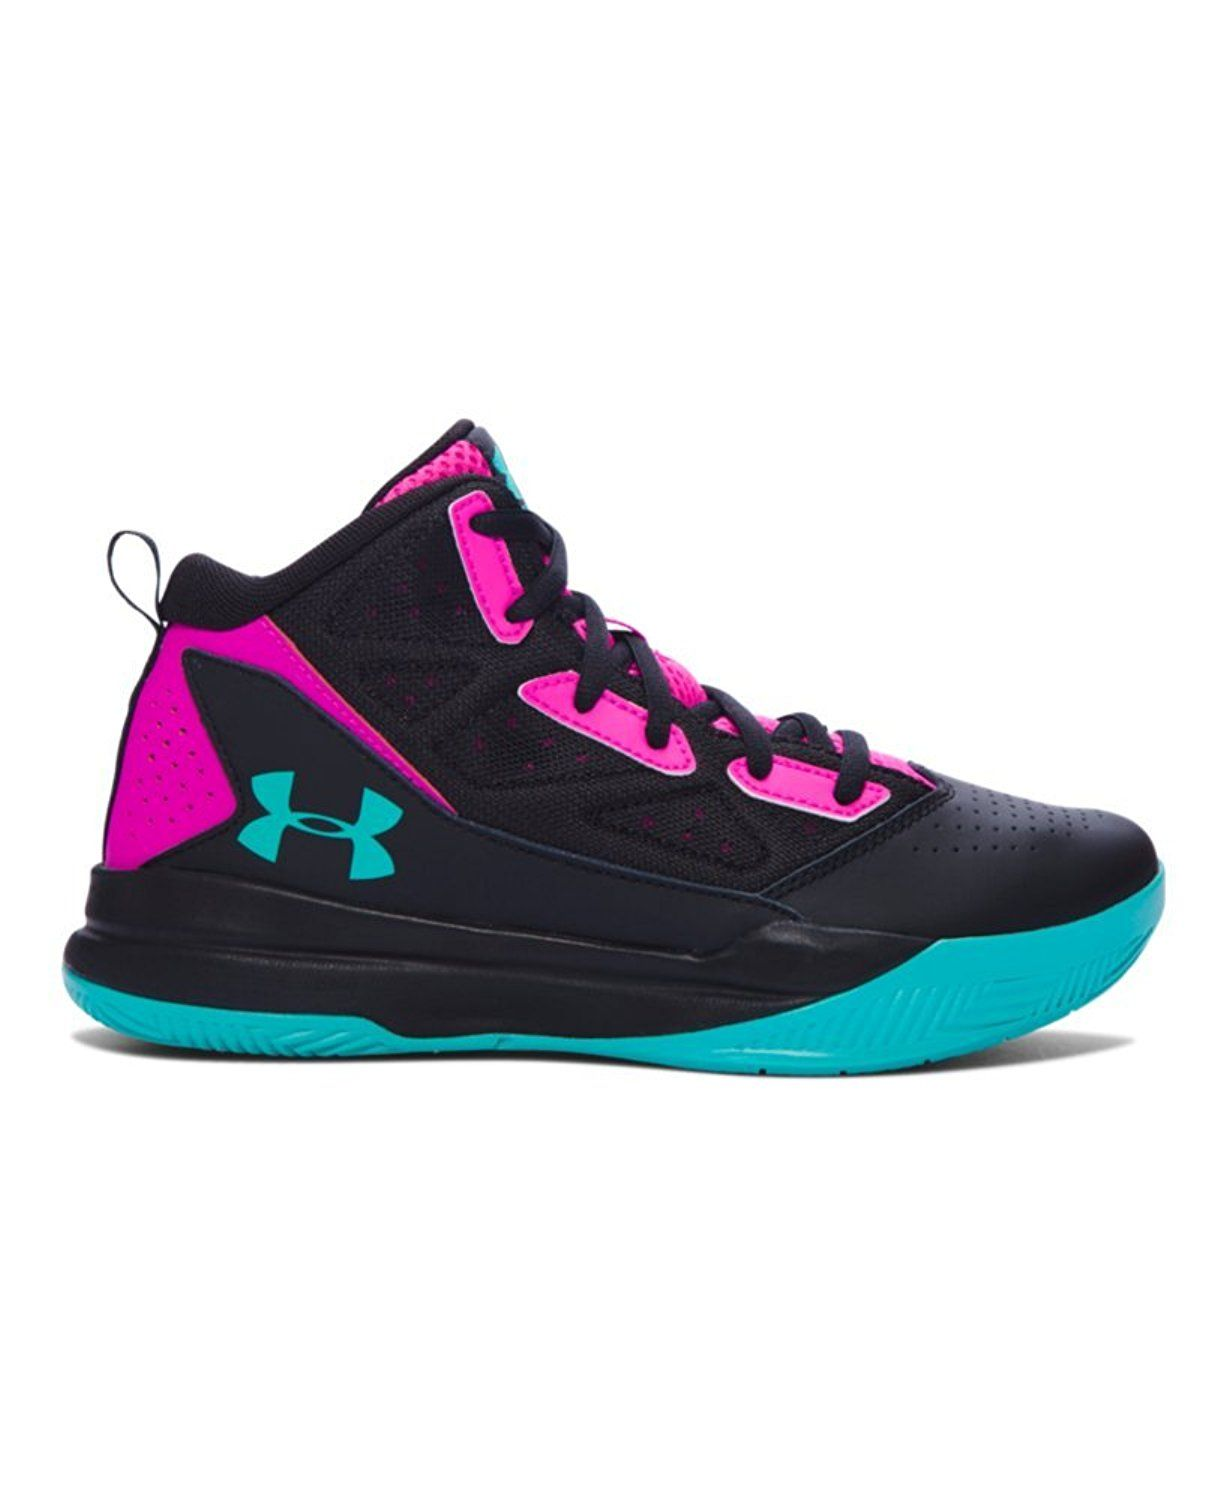 under armour shoes girls